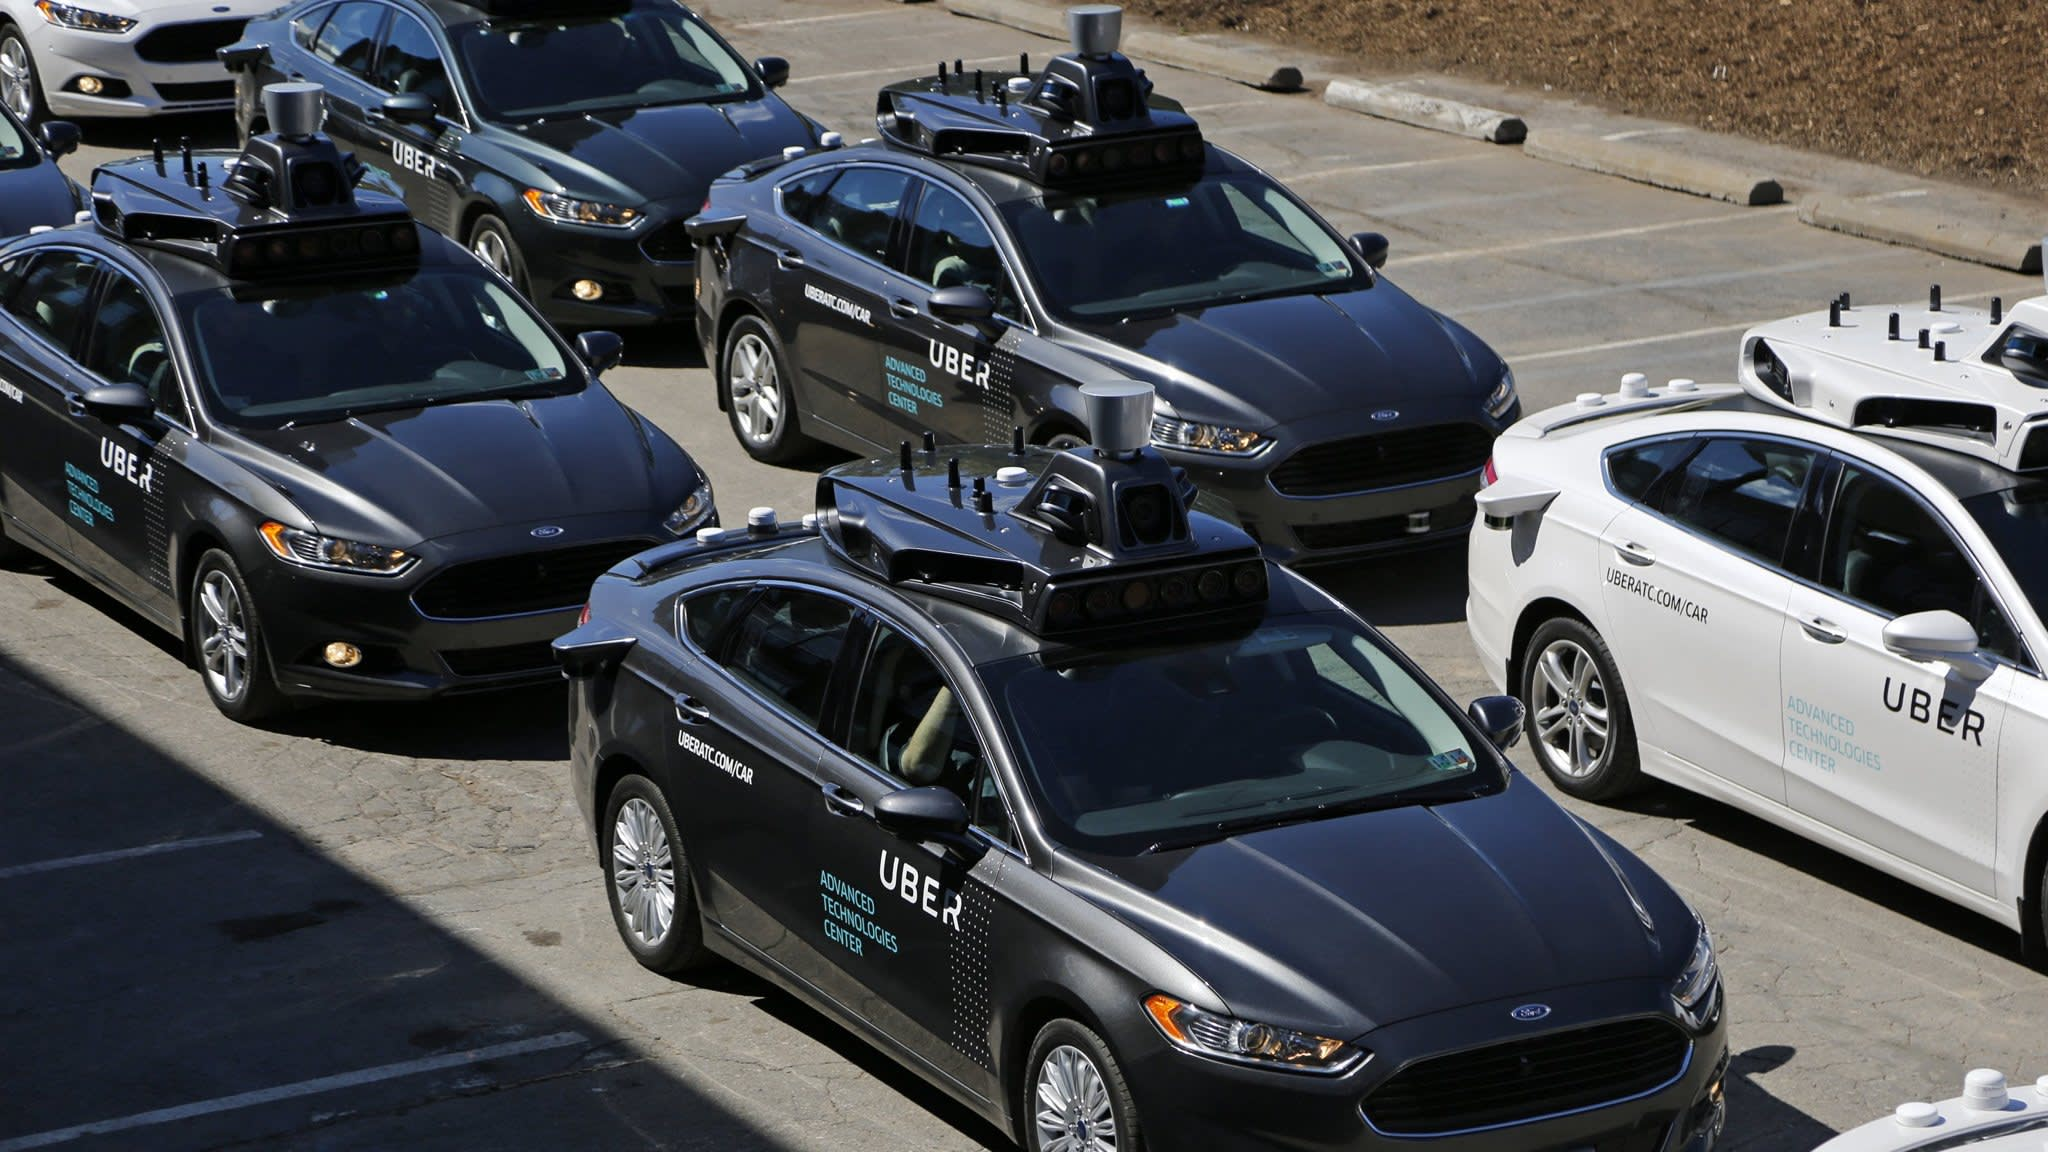 Uber eyes a smoother road after Waymo lawsuit settlement